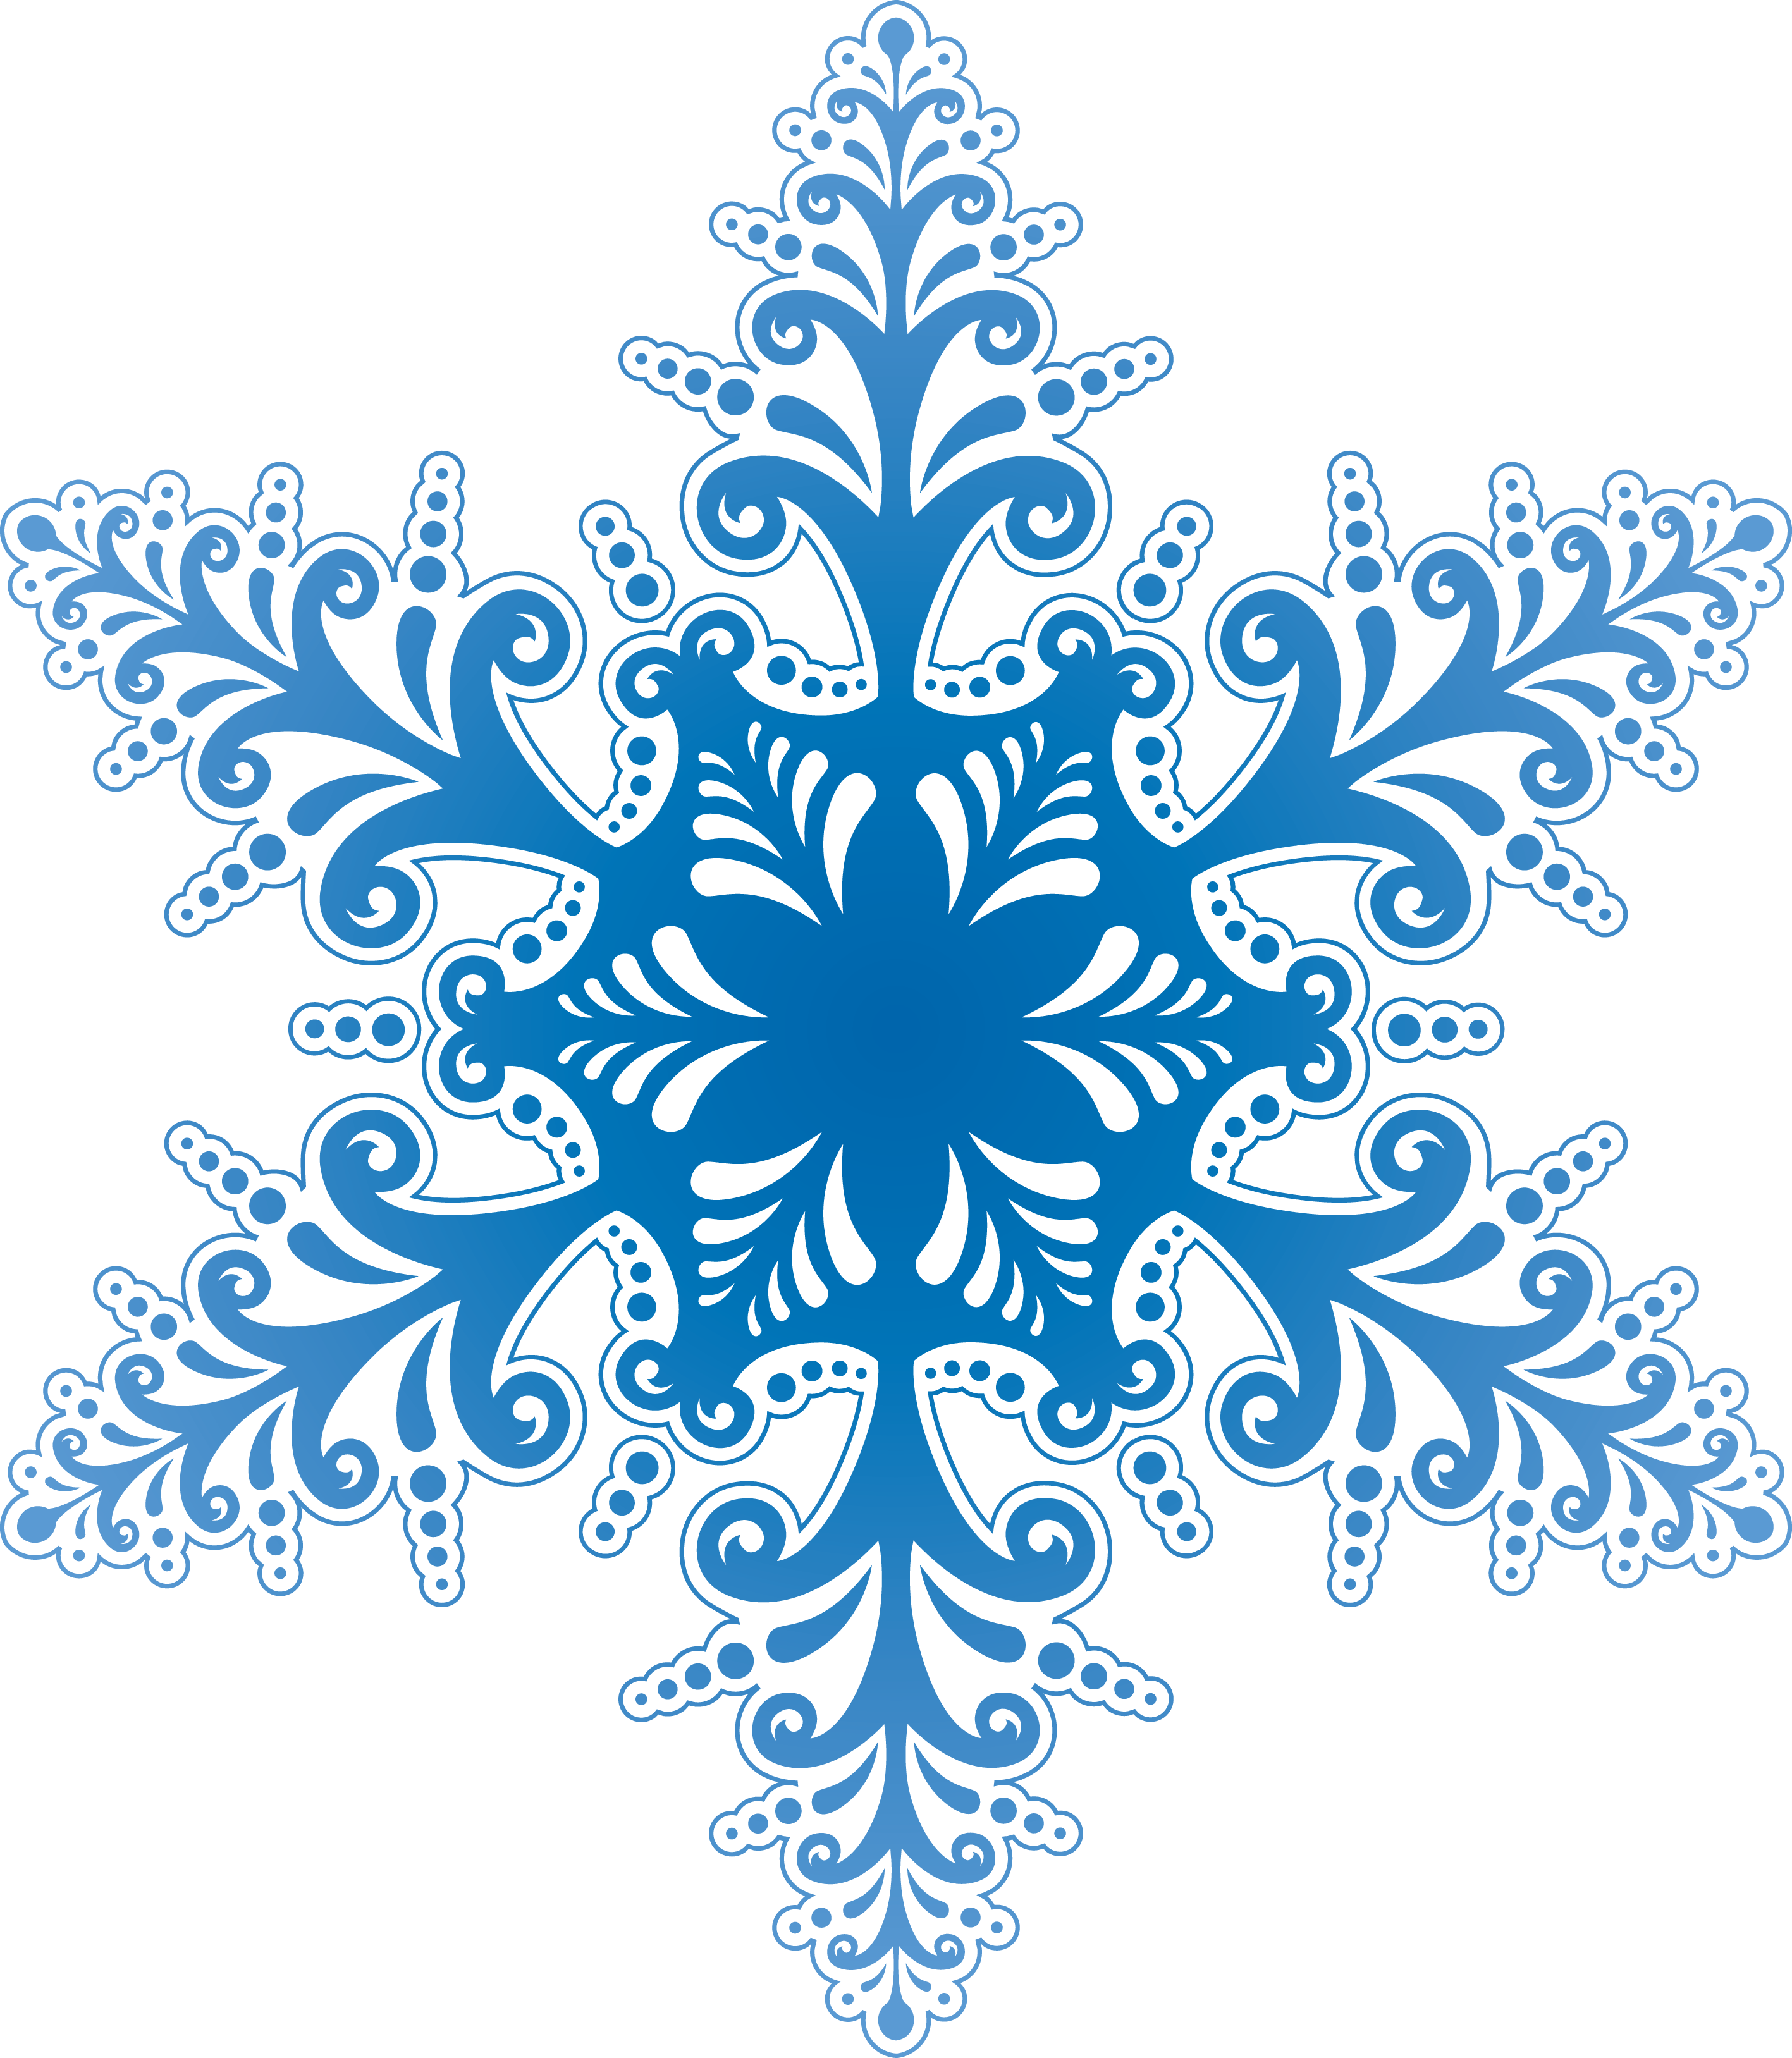 Snow Png image #41267